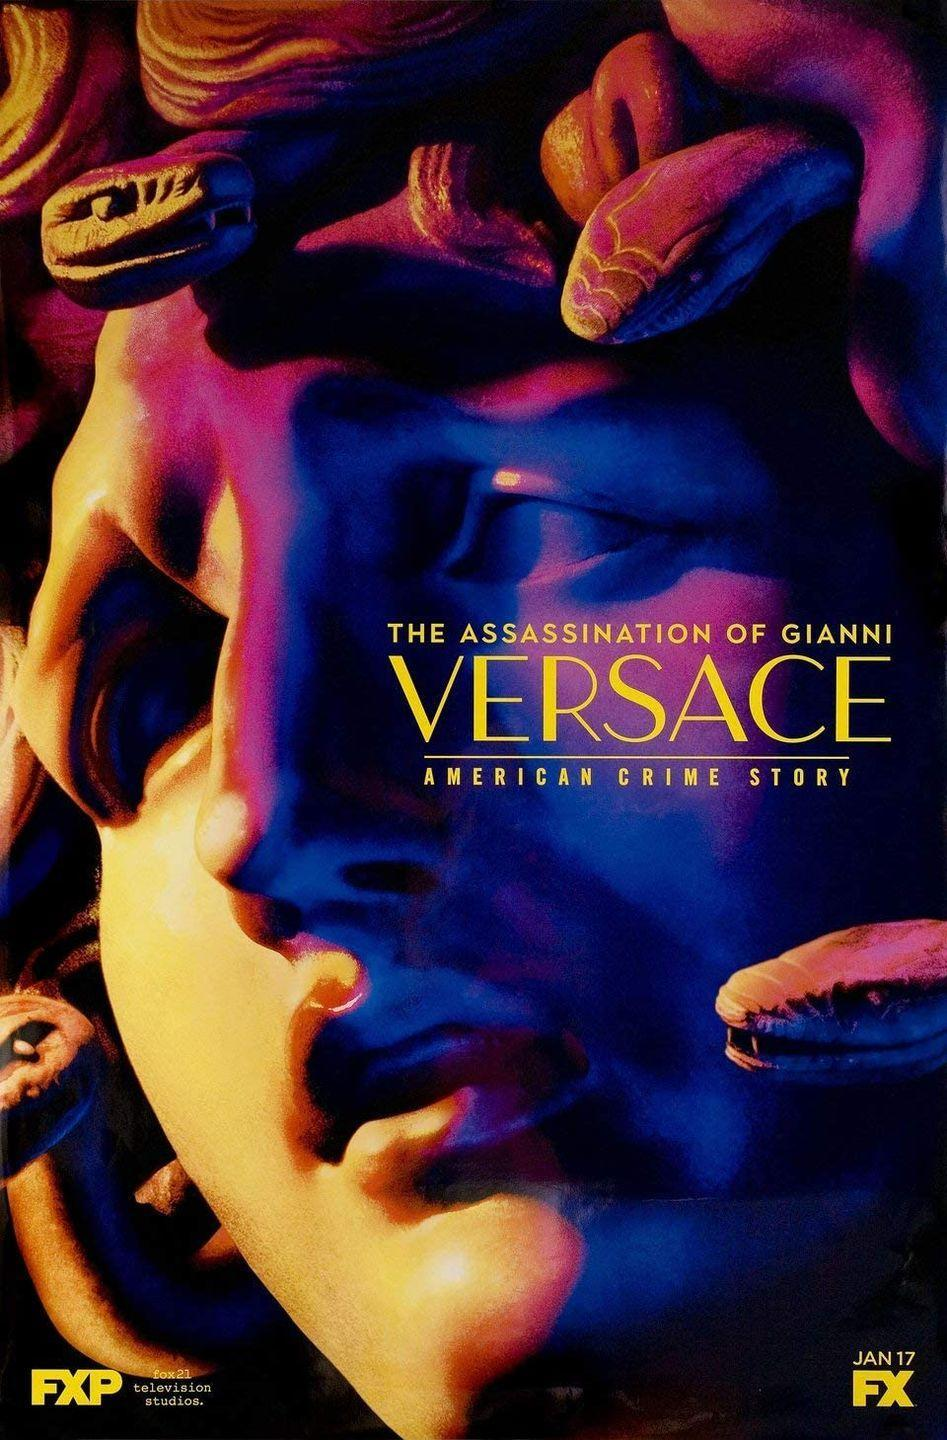 """<p><strong>Air date: </strong>2018 on FX</p><p><em>American Crime Story</em> jumped to Netflix for its second season, this time detailing the death of Italian fashion designer Gianni Versace at the hands of Andrew Cunanan. Édgar Ramírez played Versace, while Darren Criss earned an Emmy and a Golden Globe as Cunanan.</p><p>In the second season, Murphy continued to executive produce, though he did not write for the series and only directed the season premiere.<br></p><p><a class=""""link rapid-noclick-resp"""" href=""""https://www.netflix.com/title/81091015"""" rel=""""nofollow noopener"""" target=""""_blank"""" data-ylk=""""slk:WATCH NOW"""">WATCH NOW</a></p>"""